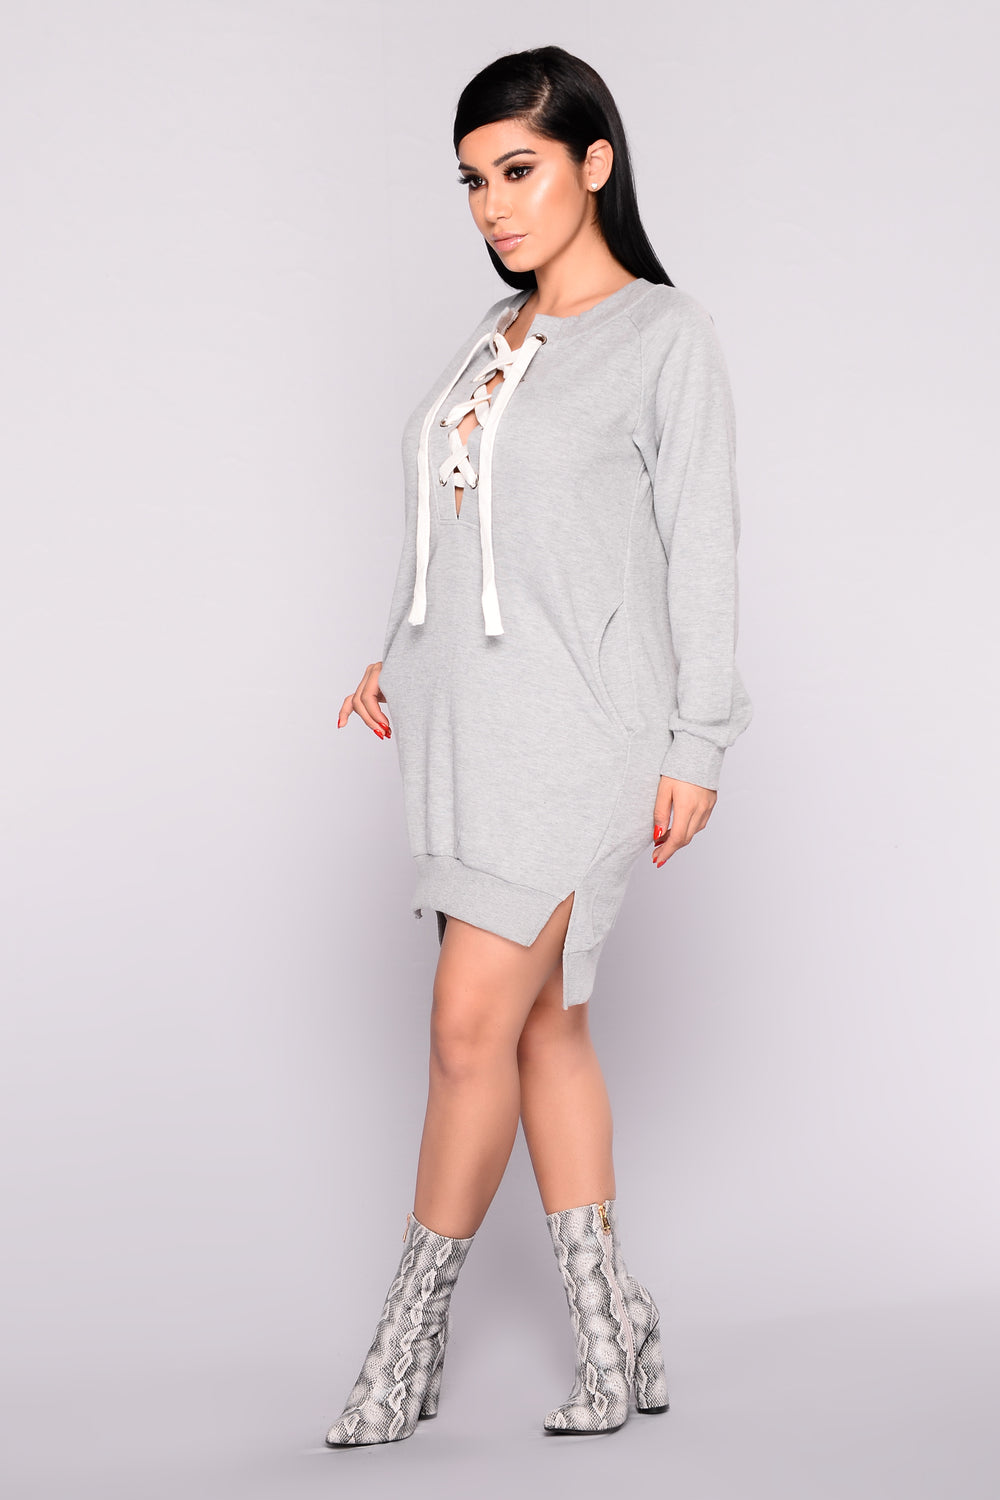 Run For It Lace Up Tunic - Heather Grey